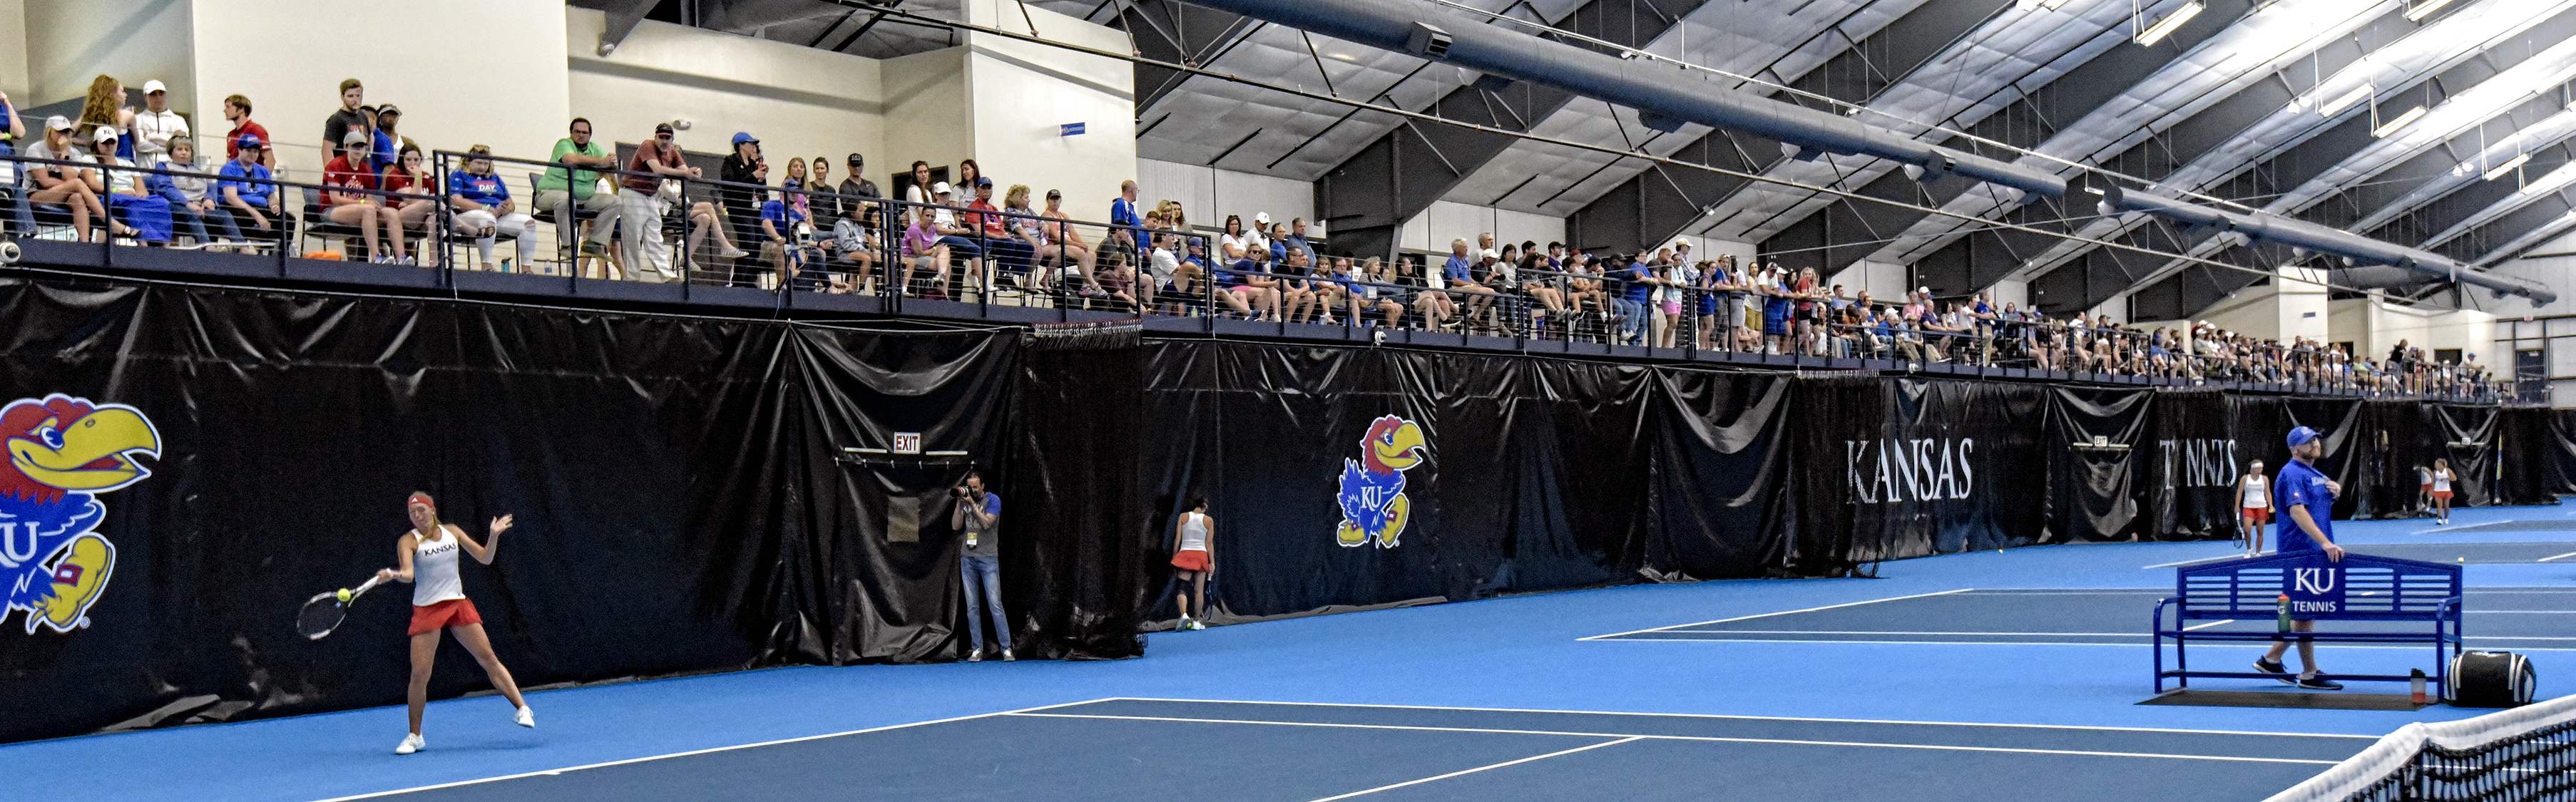 Fans pack the Jayhawk Tennis Center.